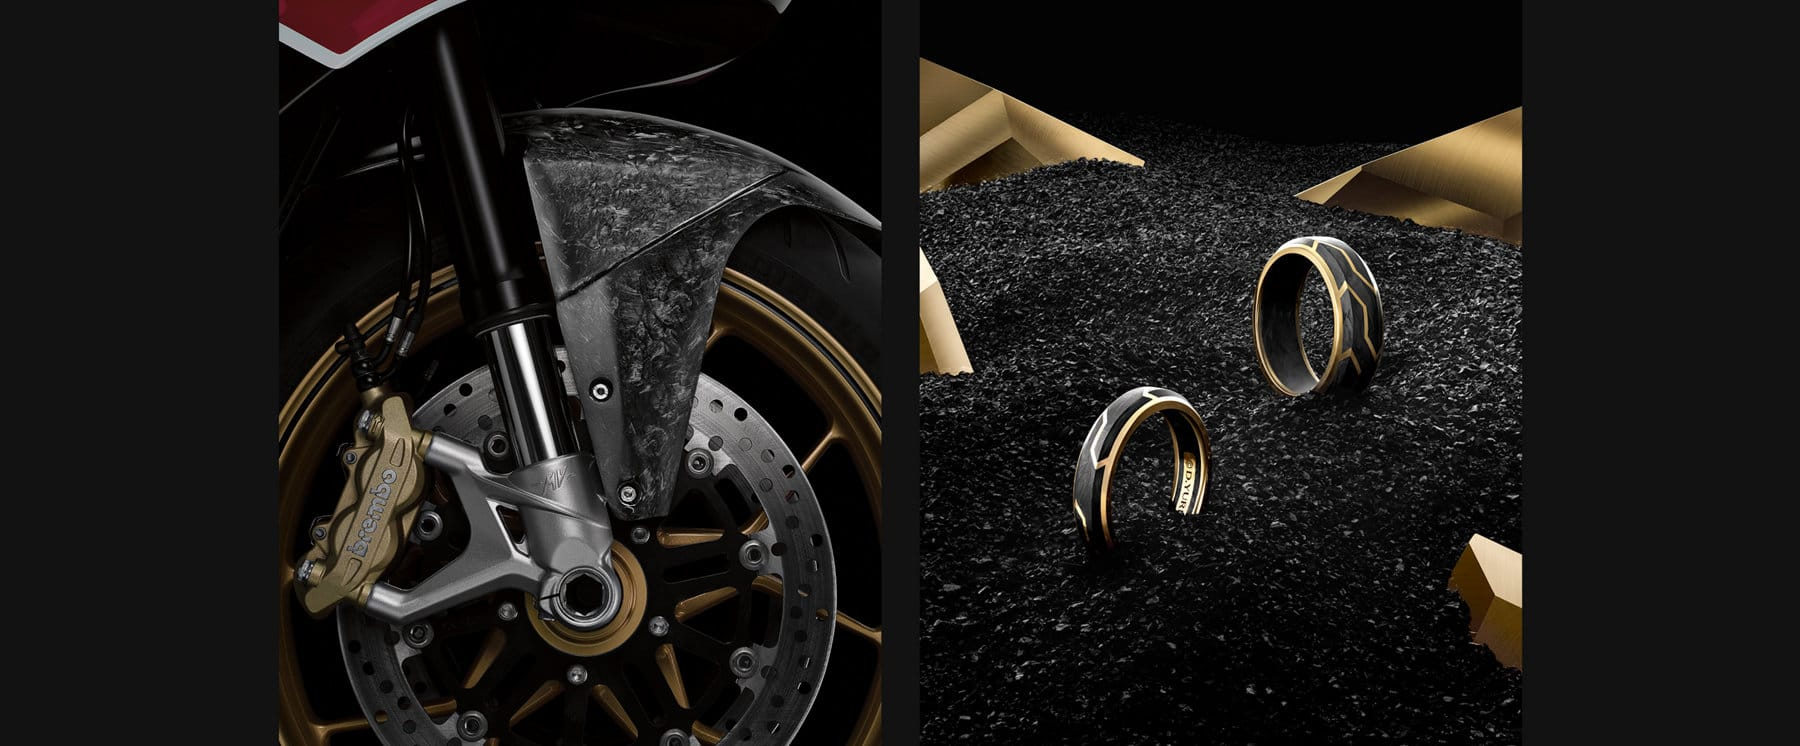 Photos en couleur de l'emblème de la collection Forged Carbon et des pièces en carbone forgé de la moto David Yurman Forged Carbon MV d'Agusta.